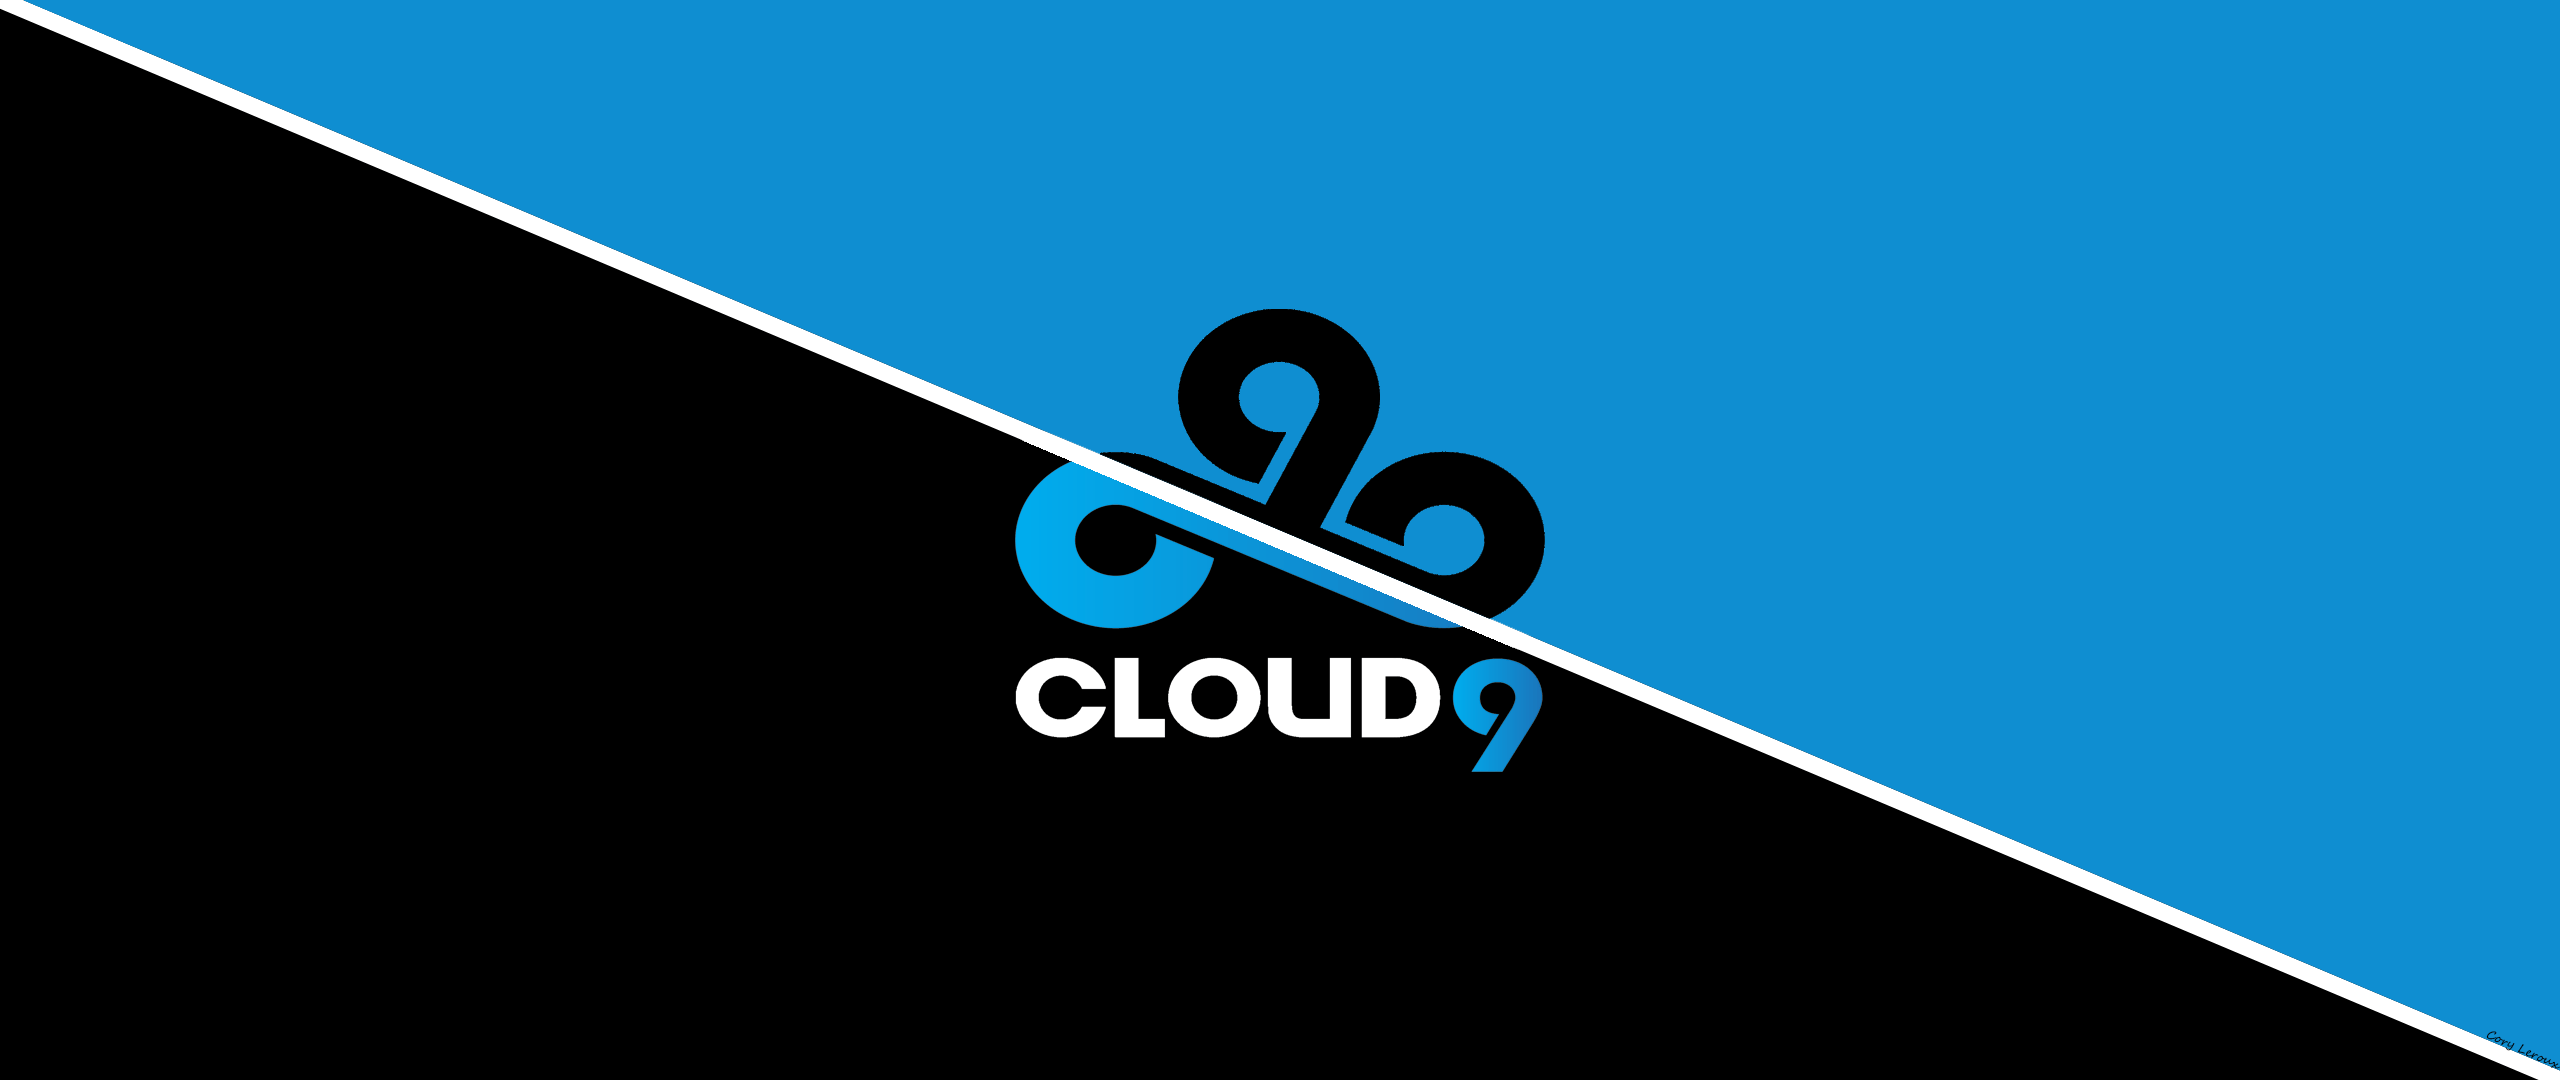 2560x1080 Cloud9 Wallpaper HD Wallpaper | Background Image | 2560x1080 | ID ...